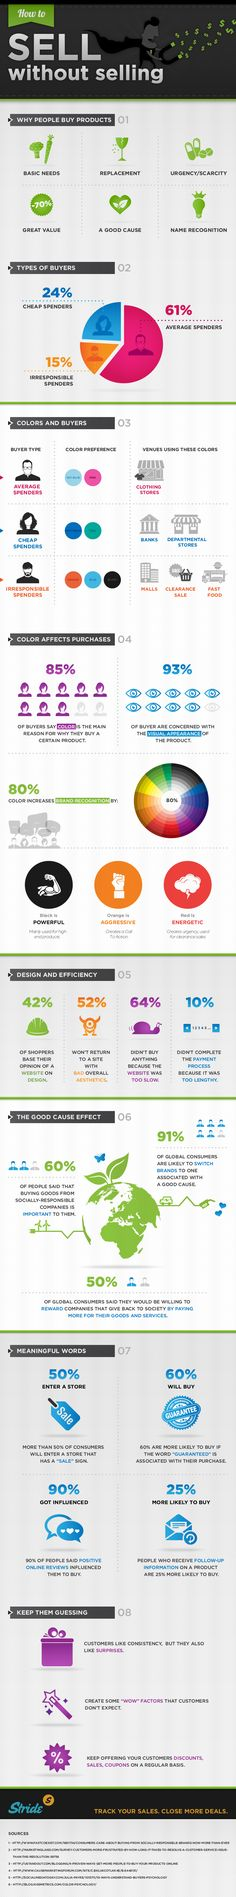 Daily Infographic A New Infographic Every Day Data Visualization, Information Design and Infographics